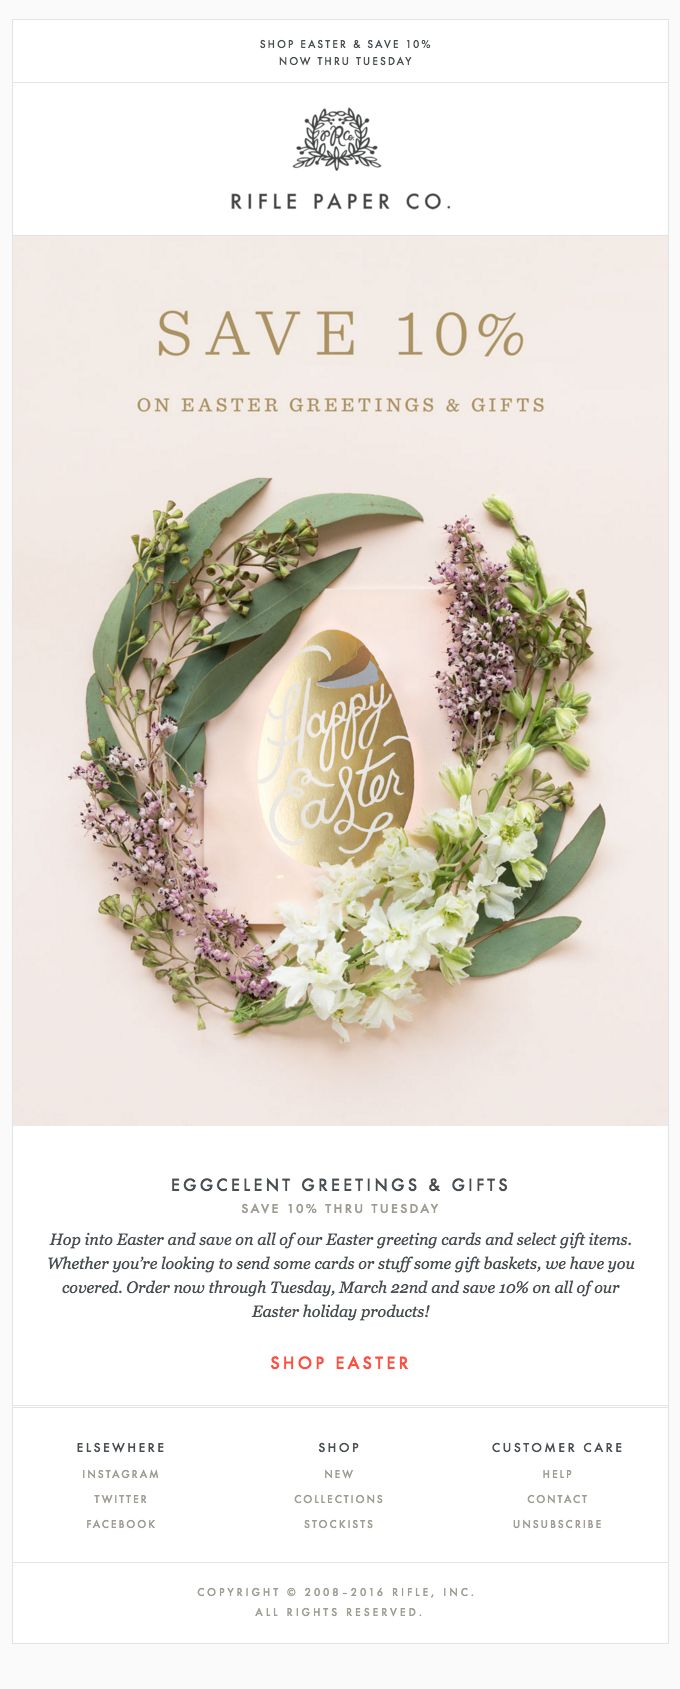 94 best easter emails images on pinterest email marketing eggcelent greetings gifts for easter really good emails negle